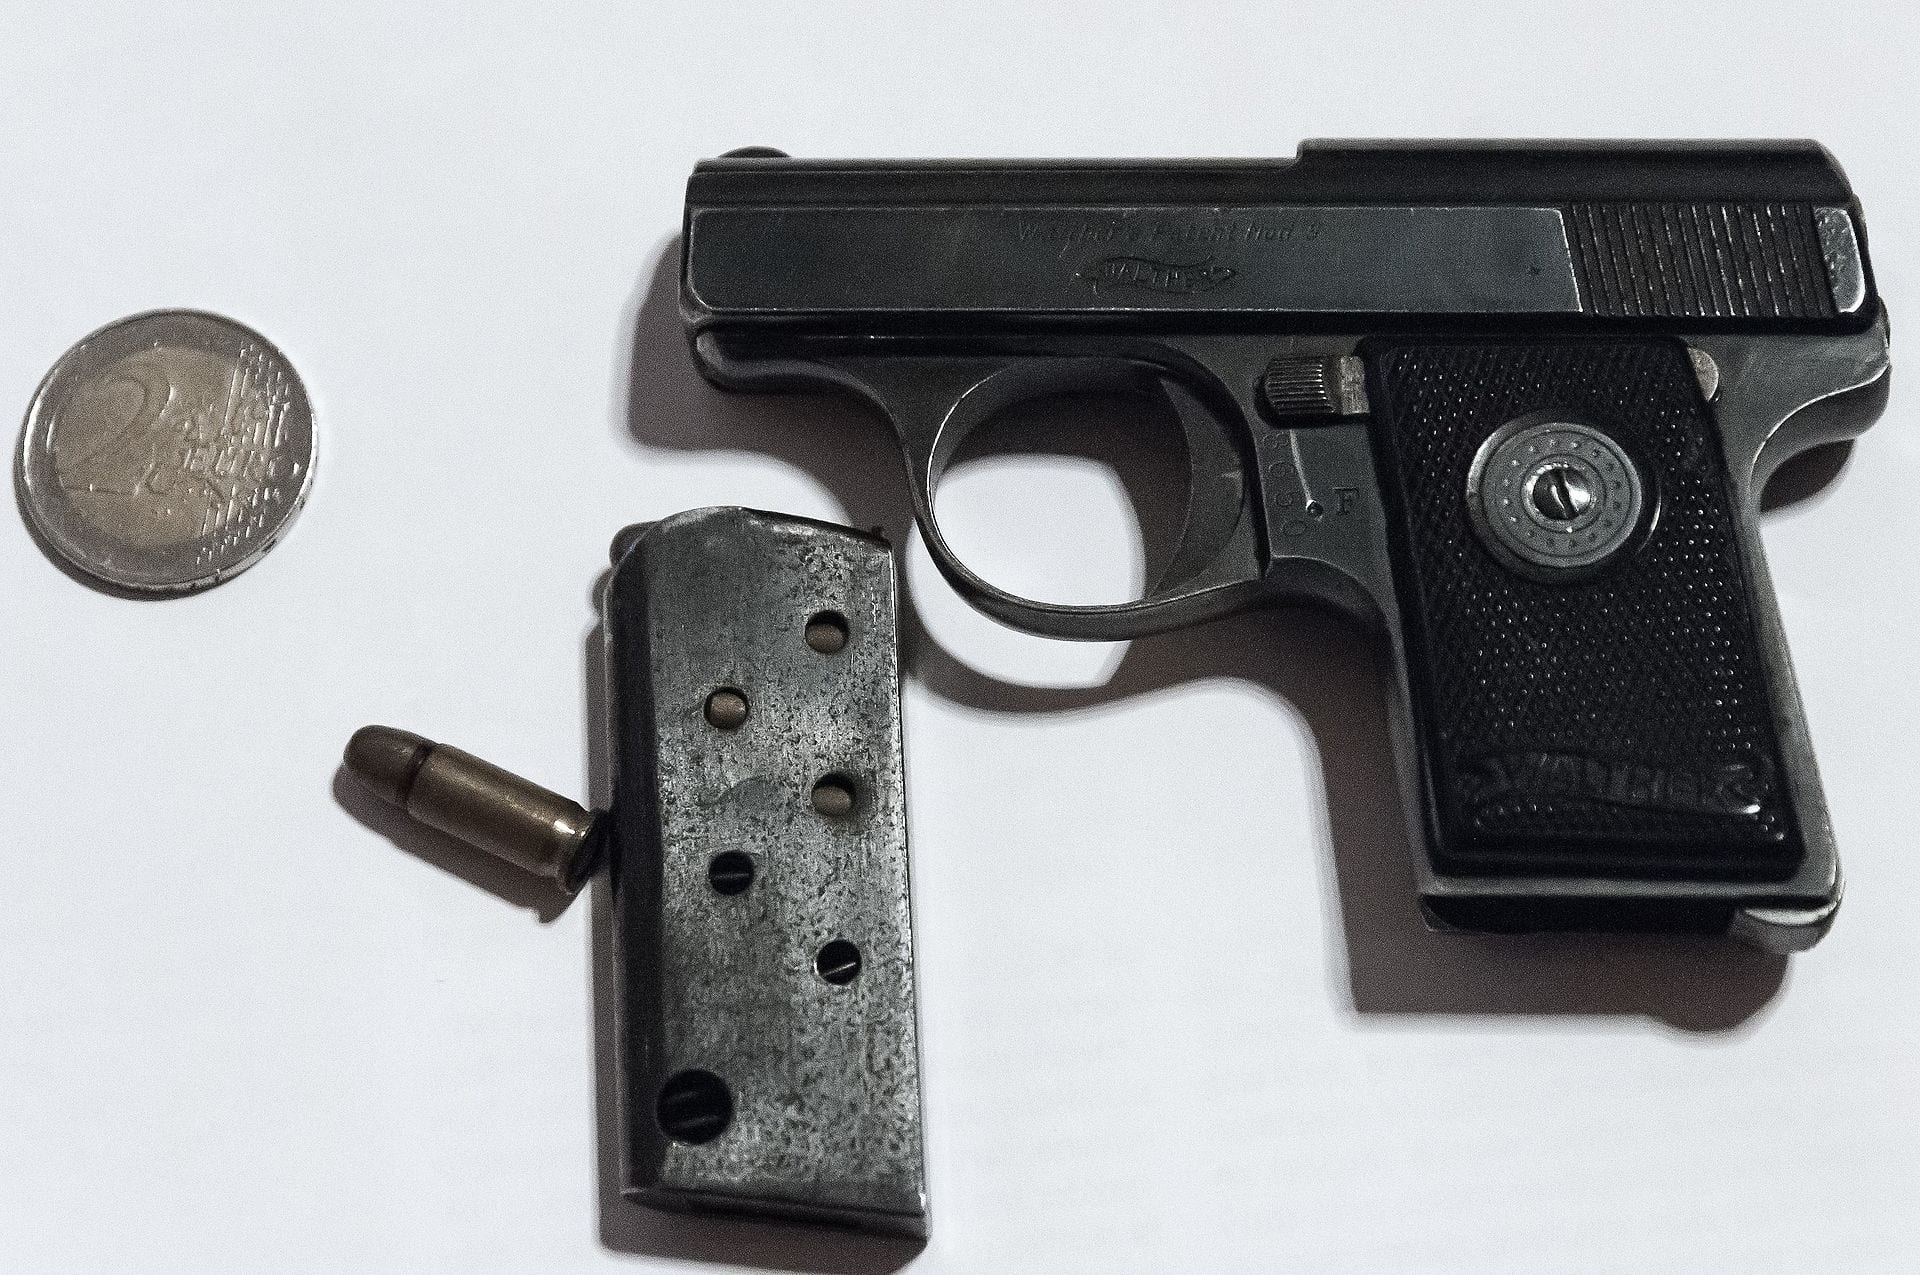 What Kind Of Damage Can A .25 Caliber Pistol Do? - Can It Kill? 1